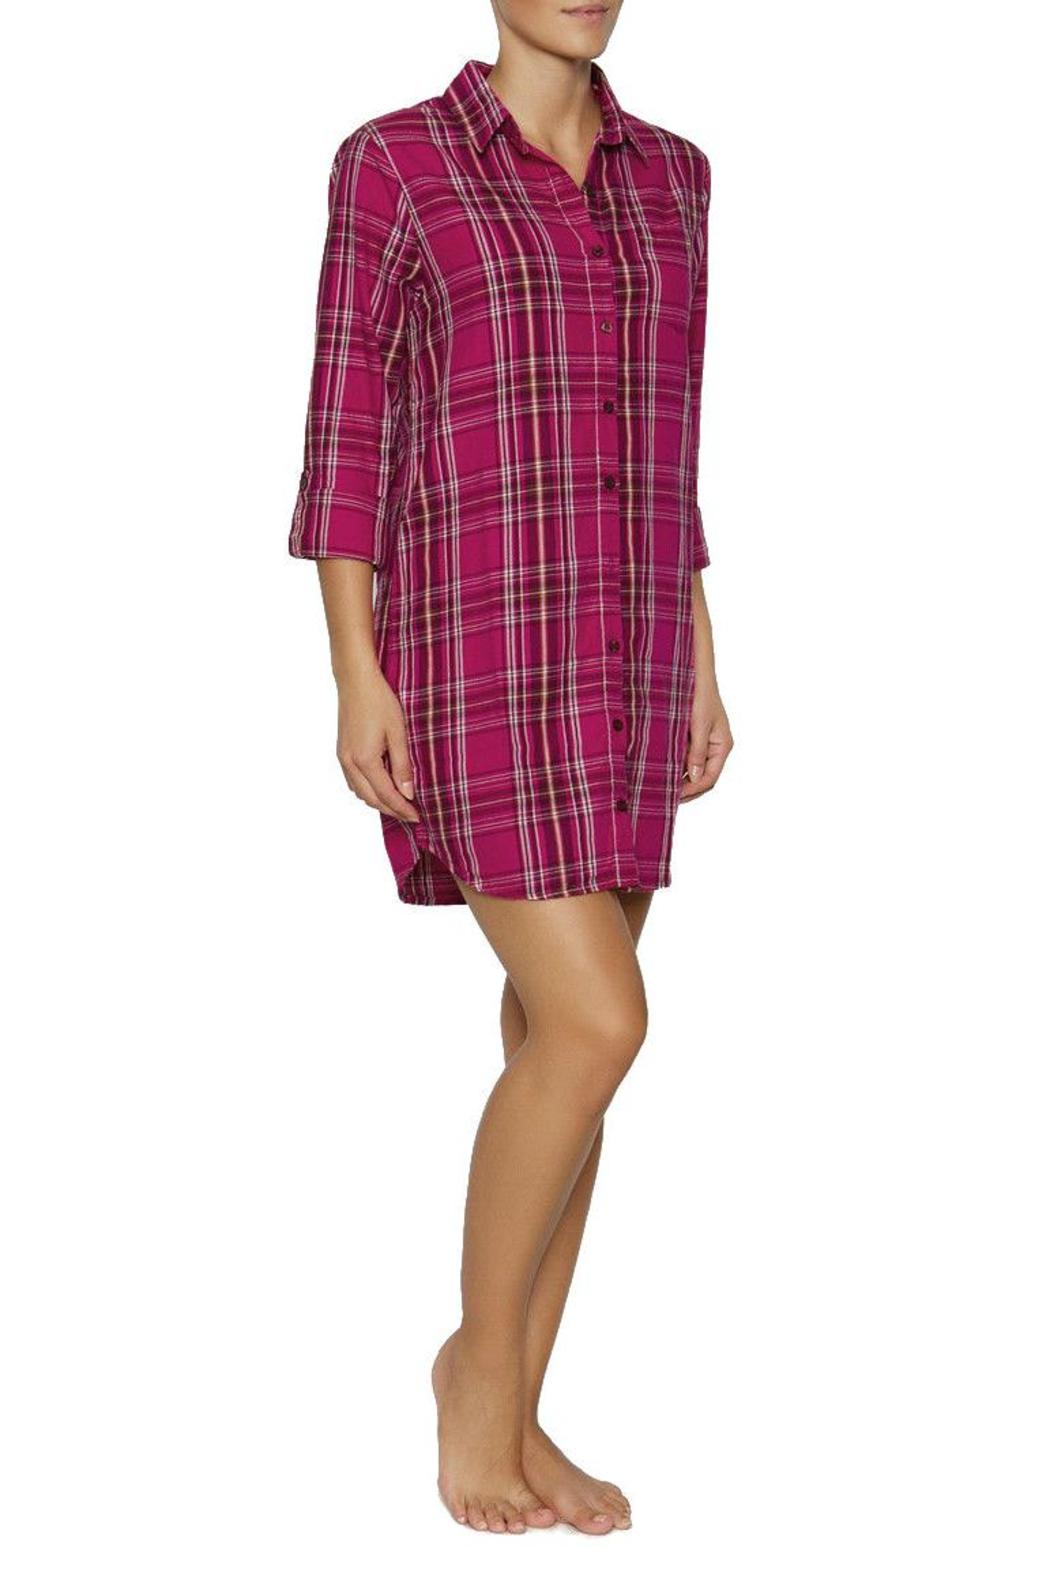 The Dressing Room Fuchsia Plaid Nightshirt - Main Image